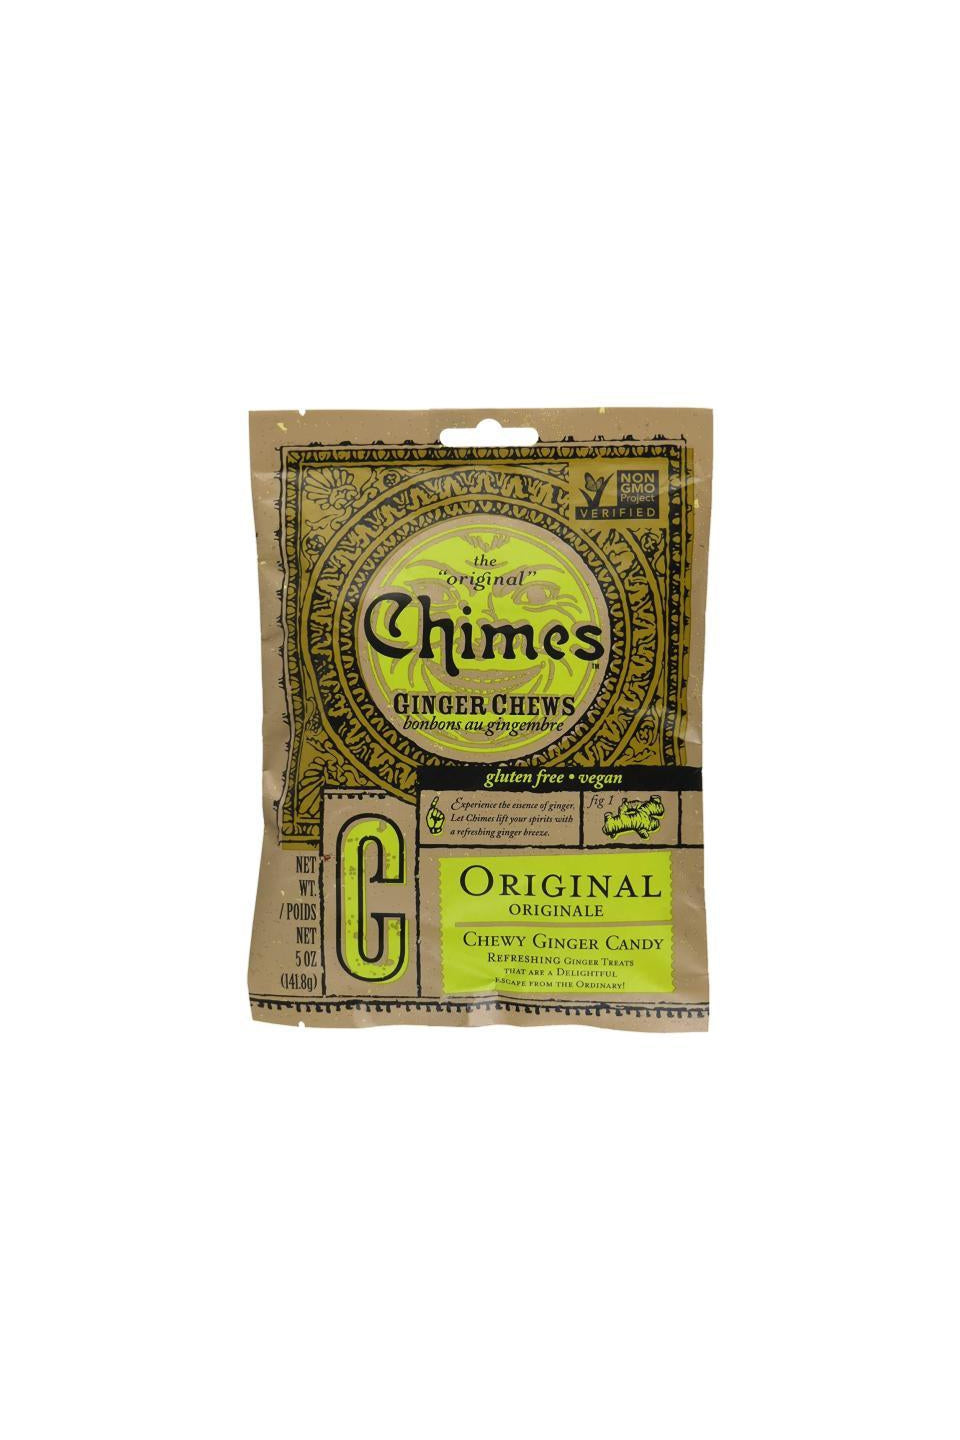 Chimes Original Ginger Chews 141.8g